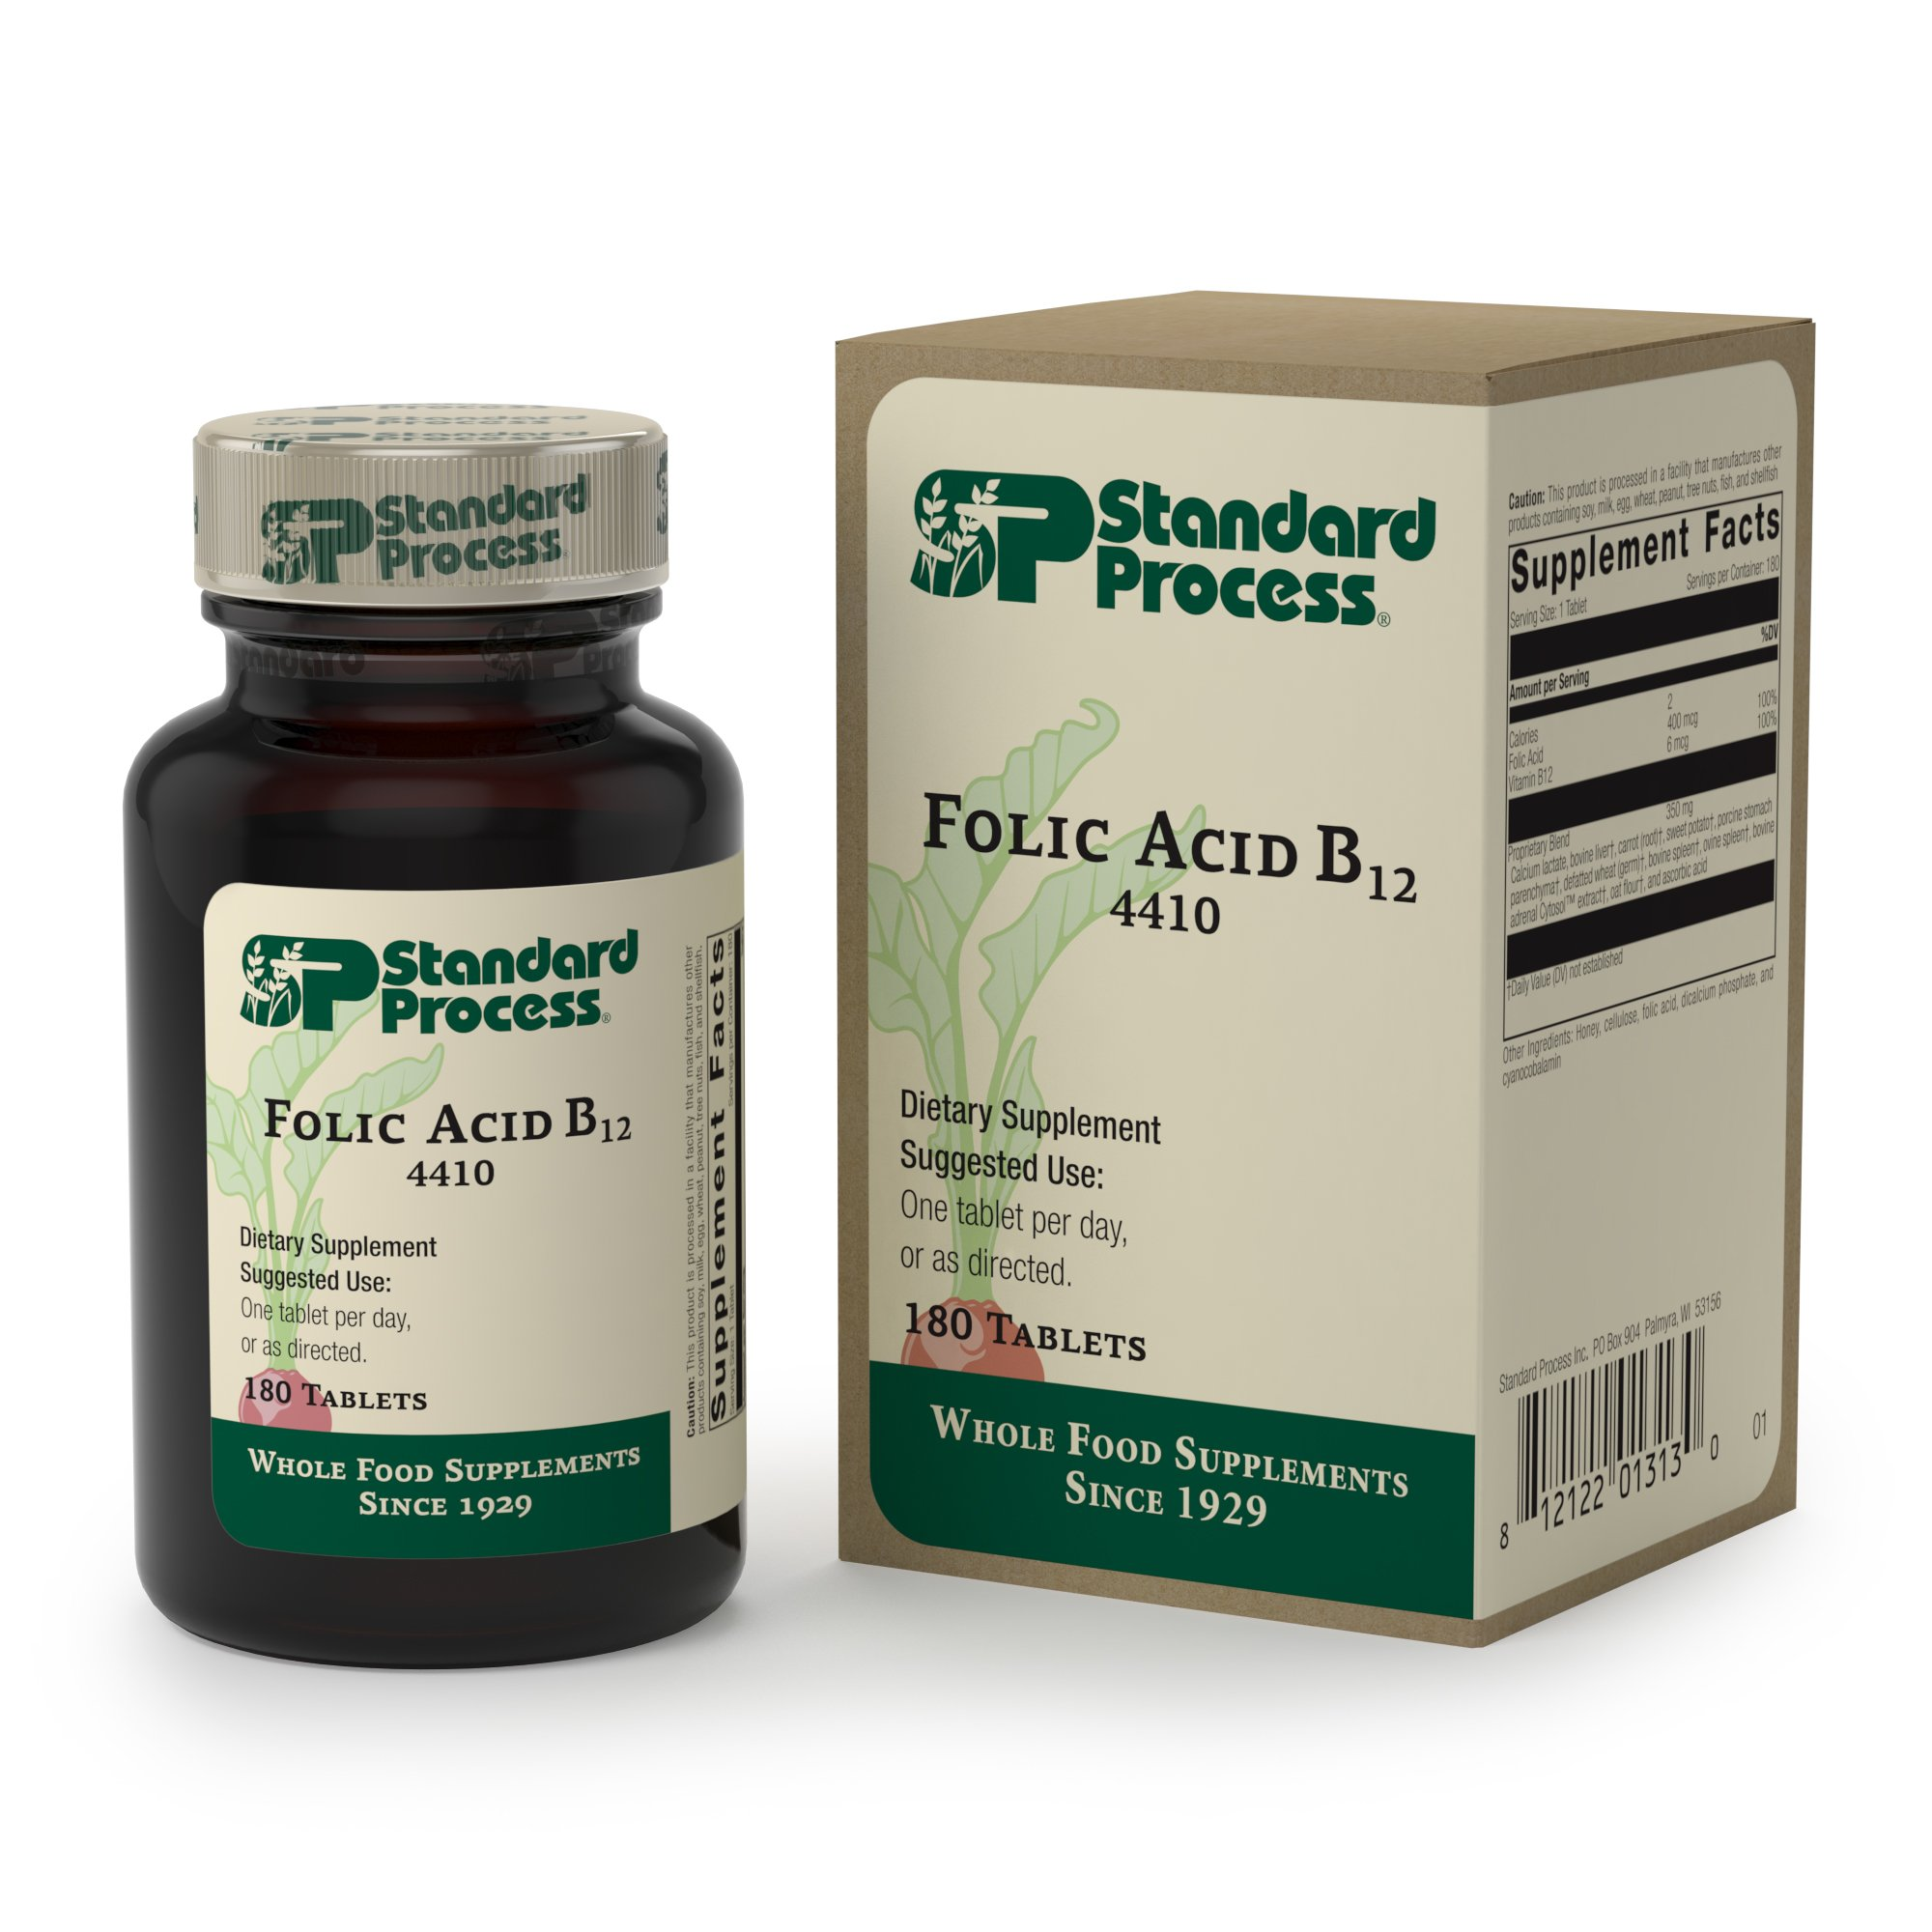 Standard Process - Folic Acid B12 - Folic Acid and Vitamin B12 Supplement, Supports Cellular Health, Circulatory and Nervous Systems, Healthy Homcysteine Levels - 180 Tablets